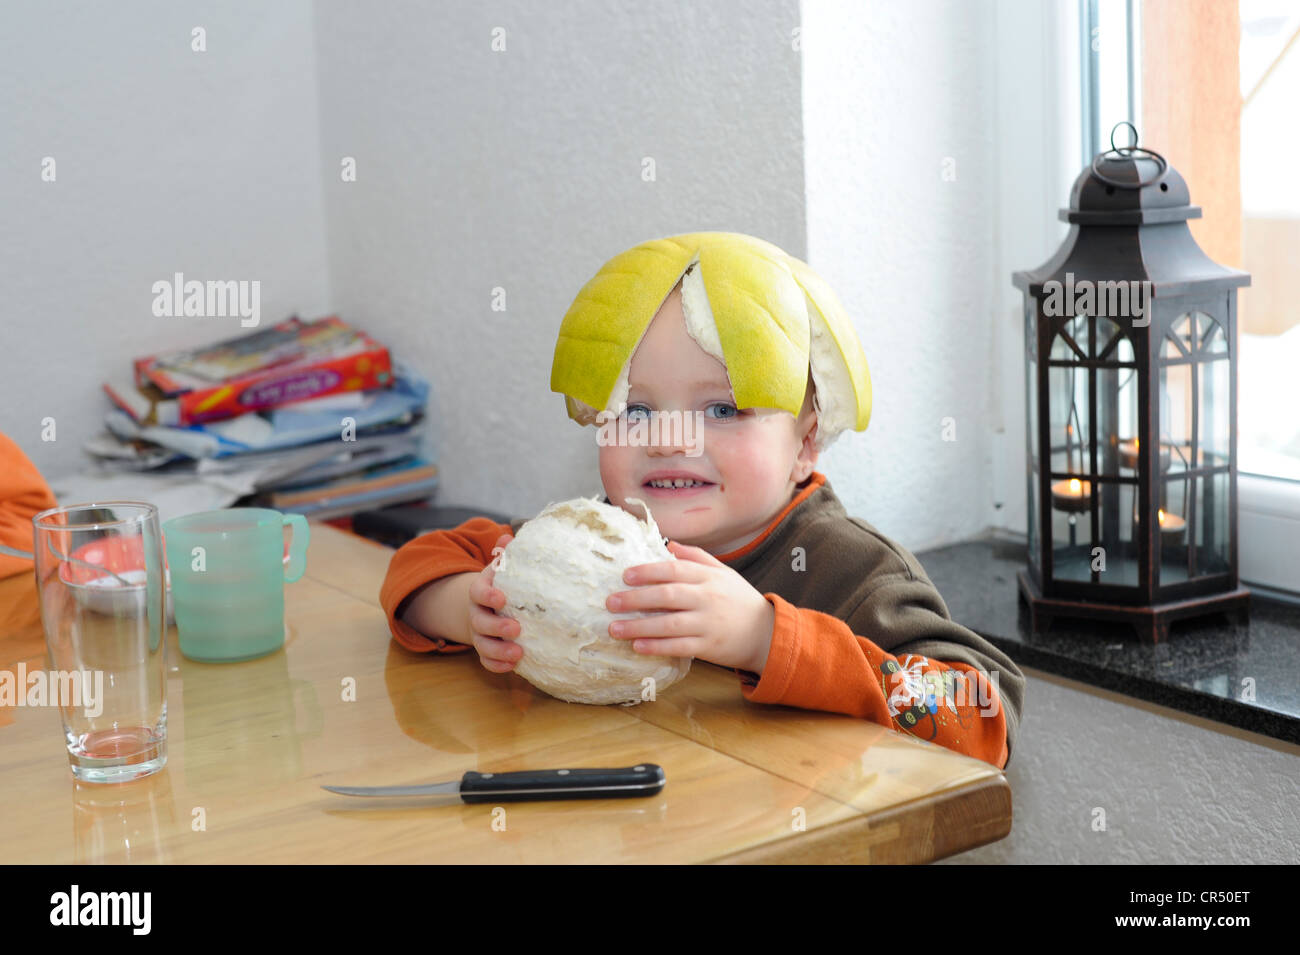 Boy, 2 years, sitting at the table, with pomelo skin on his head - Stock Image